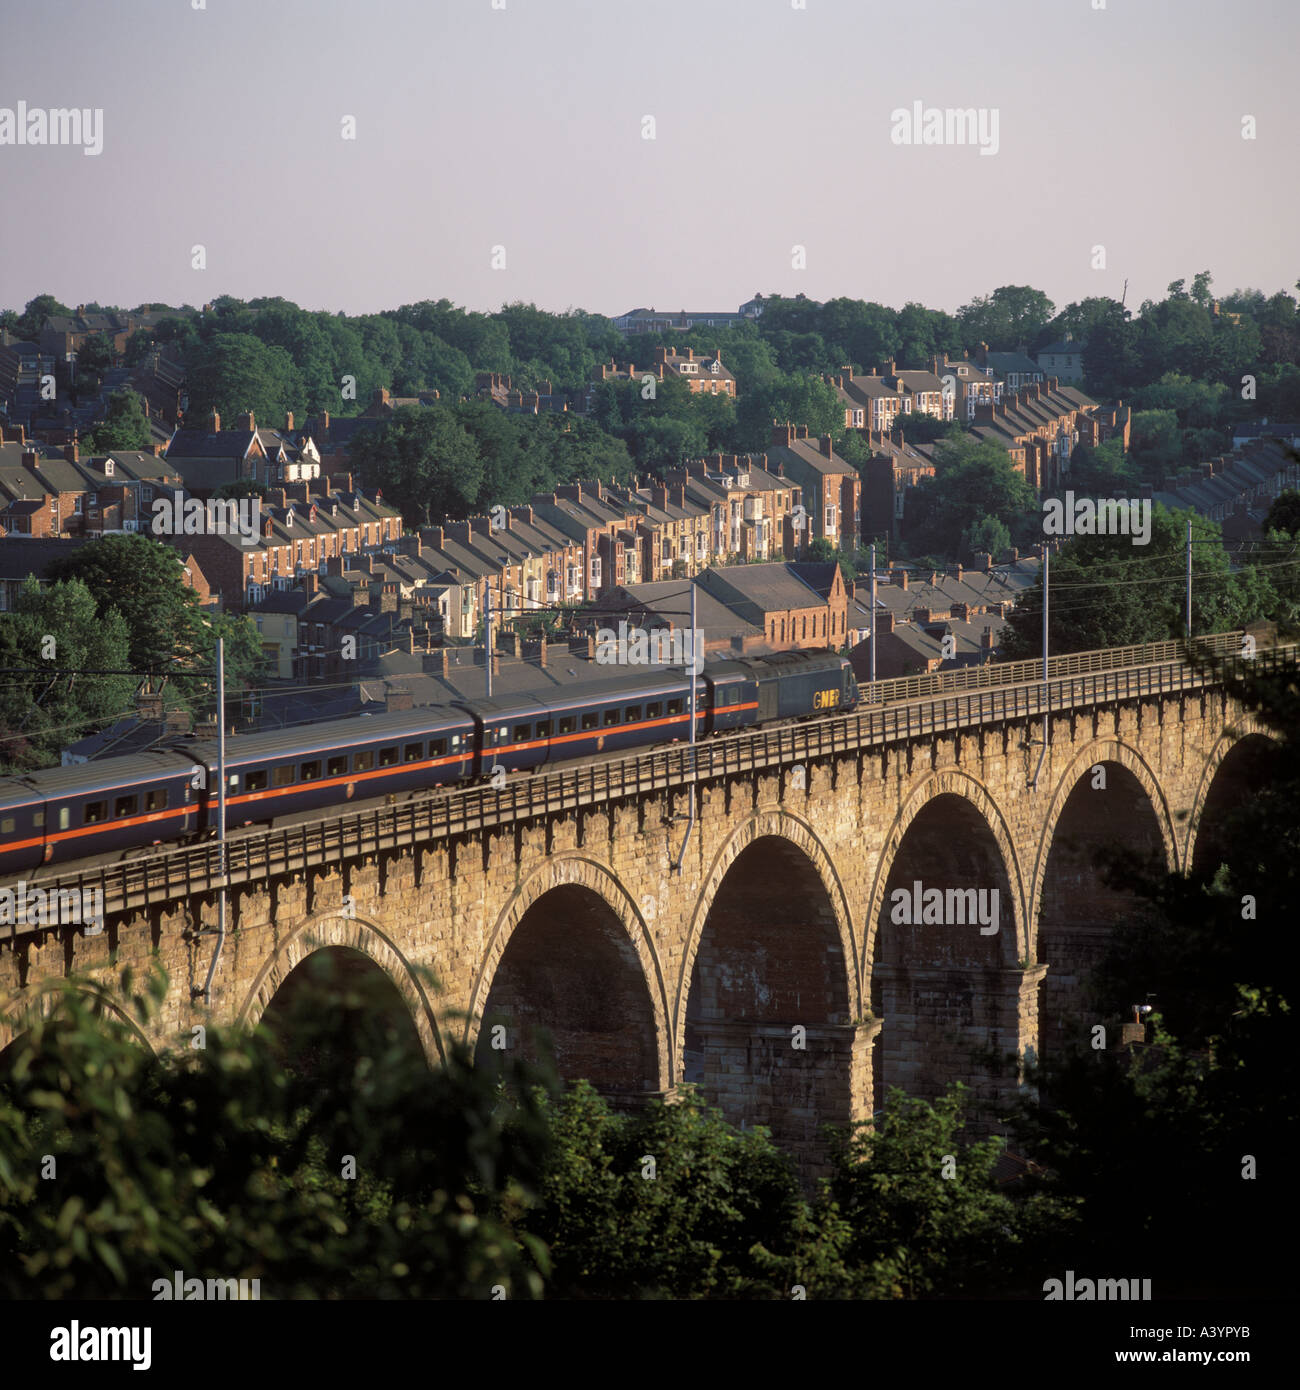 Gner Train On Railway Viaduct And City View Durham City Uk Stock